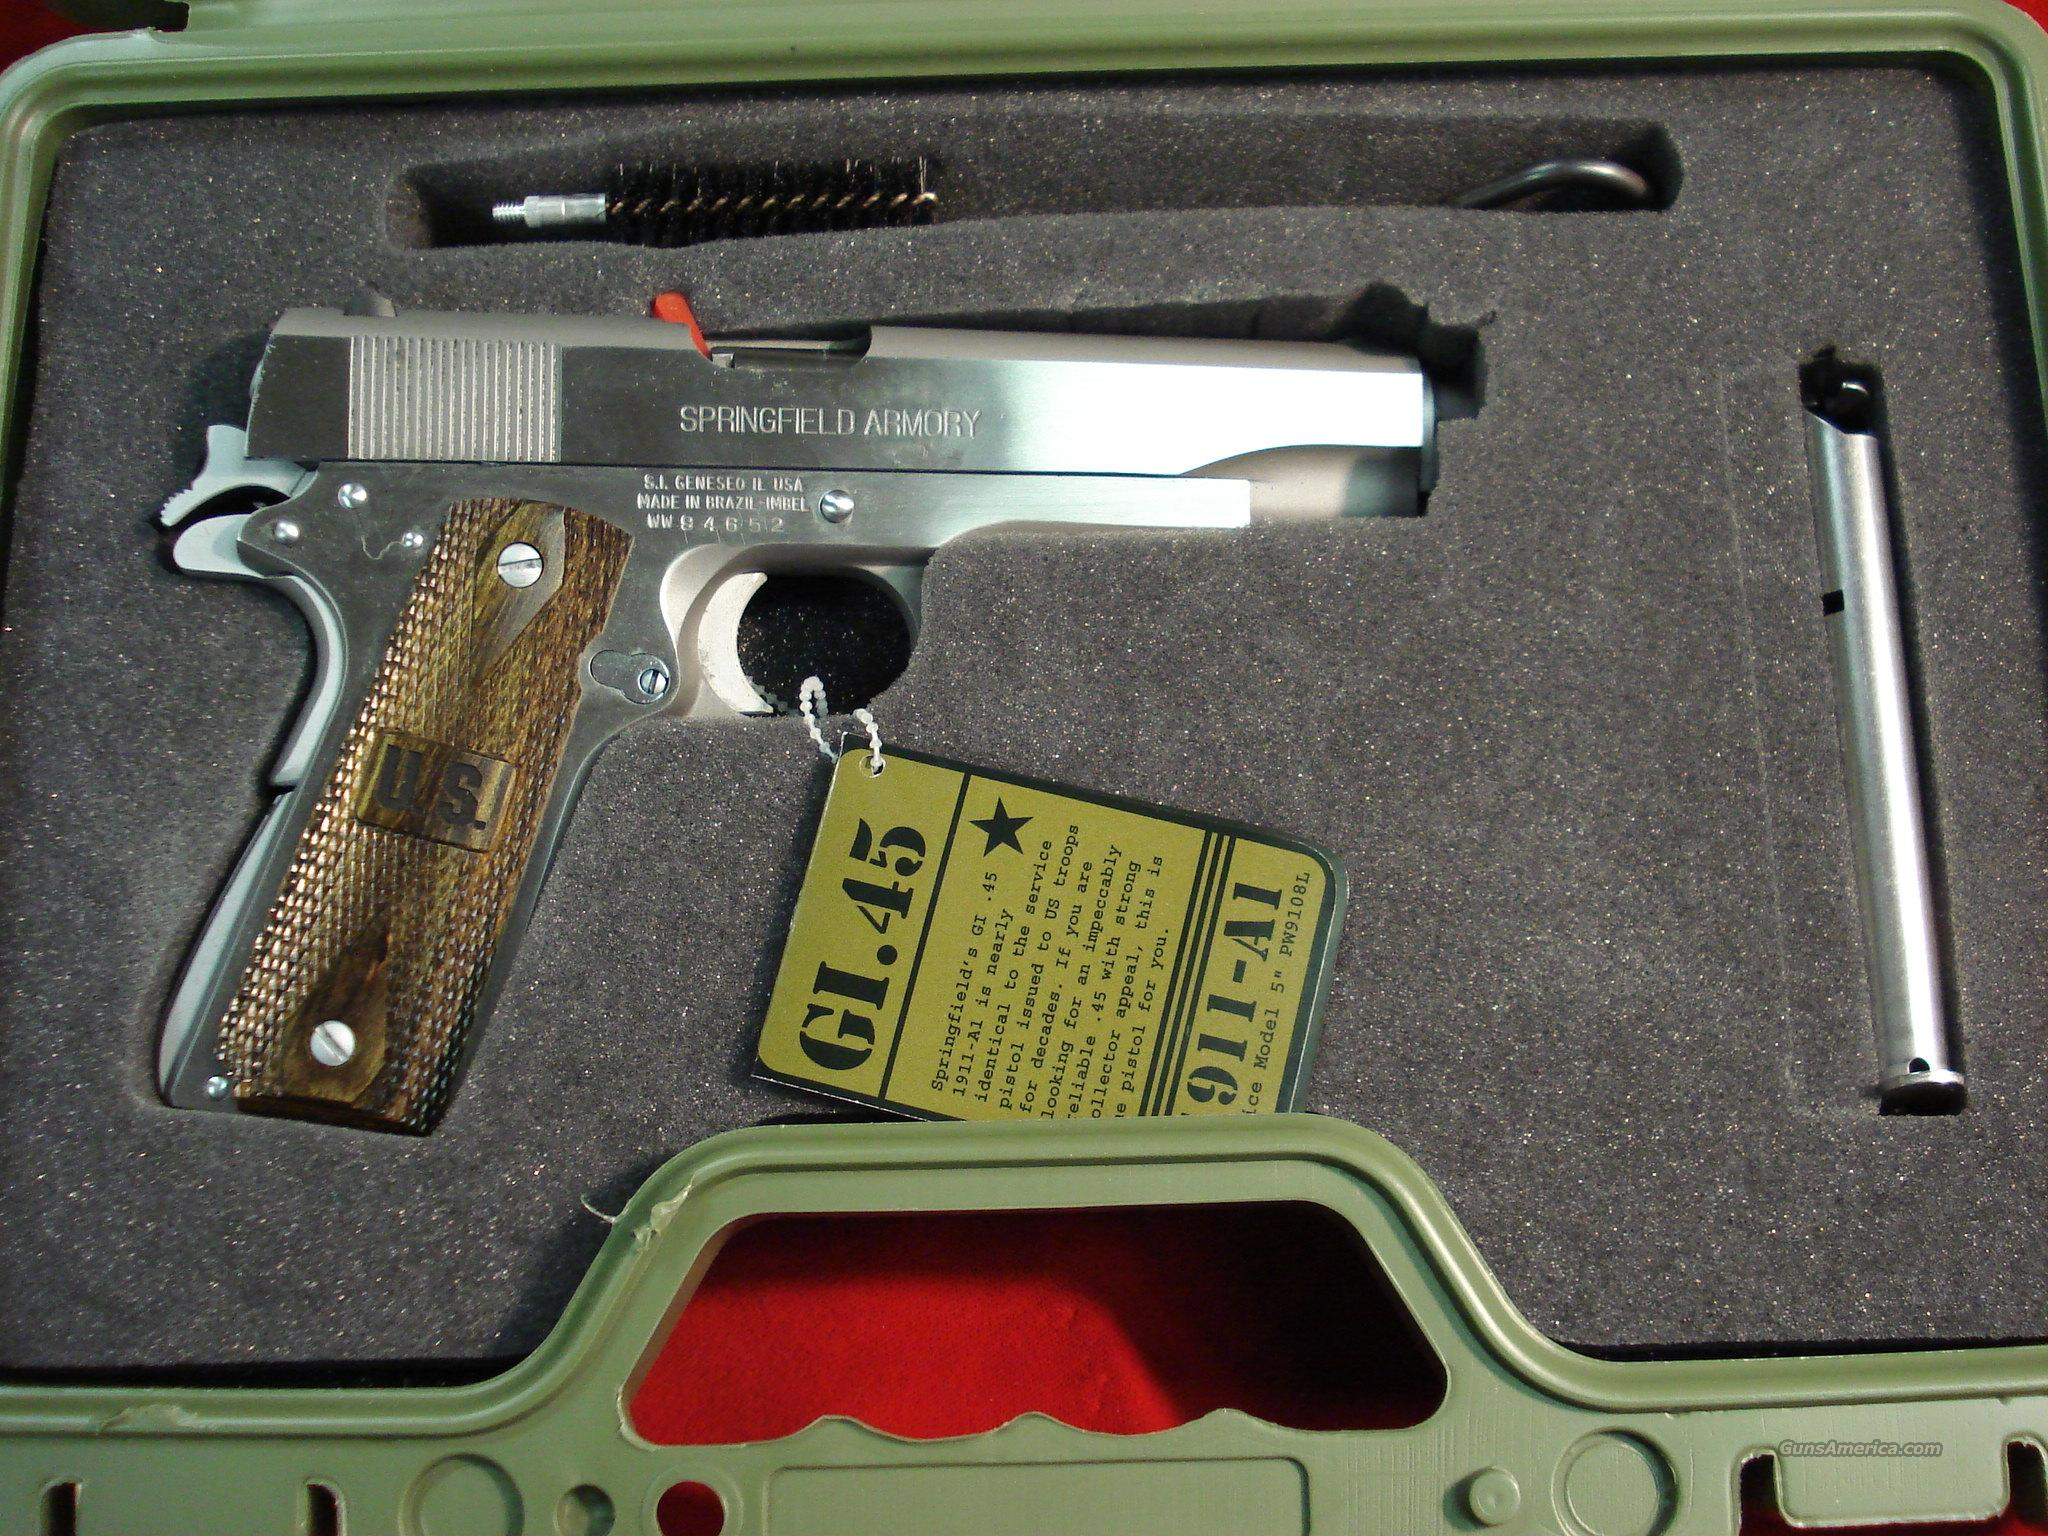 SPRINGFIELD ARMORY GI STAINLESS (PW9151LP)   Guns > Pistols > Springfield Armory Pistols > 1911 Type